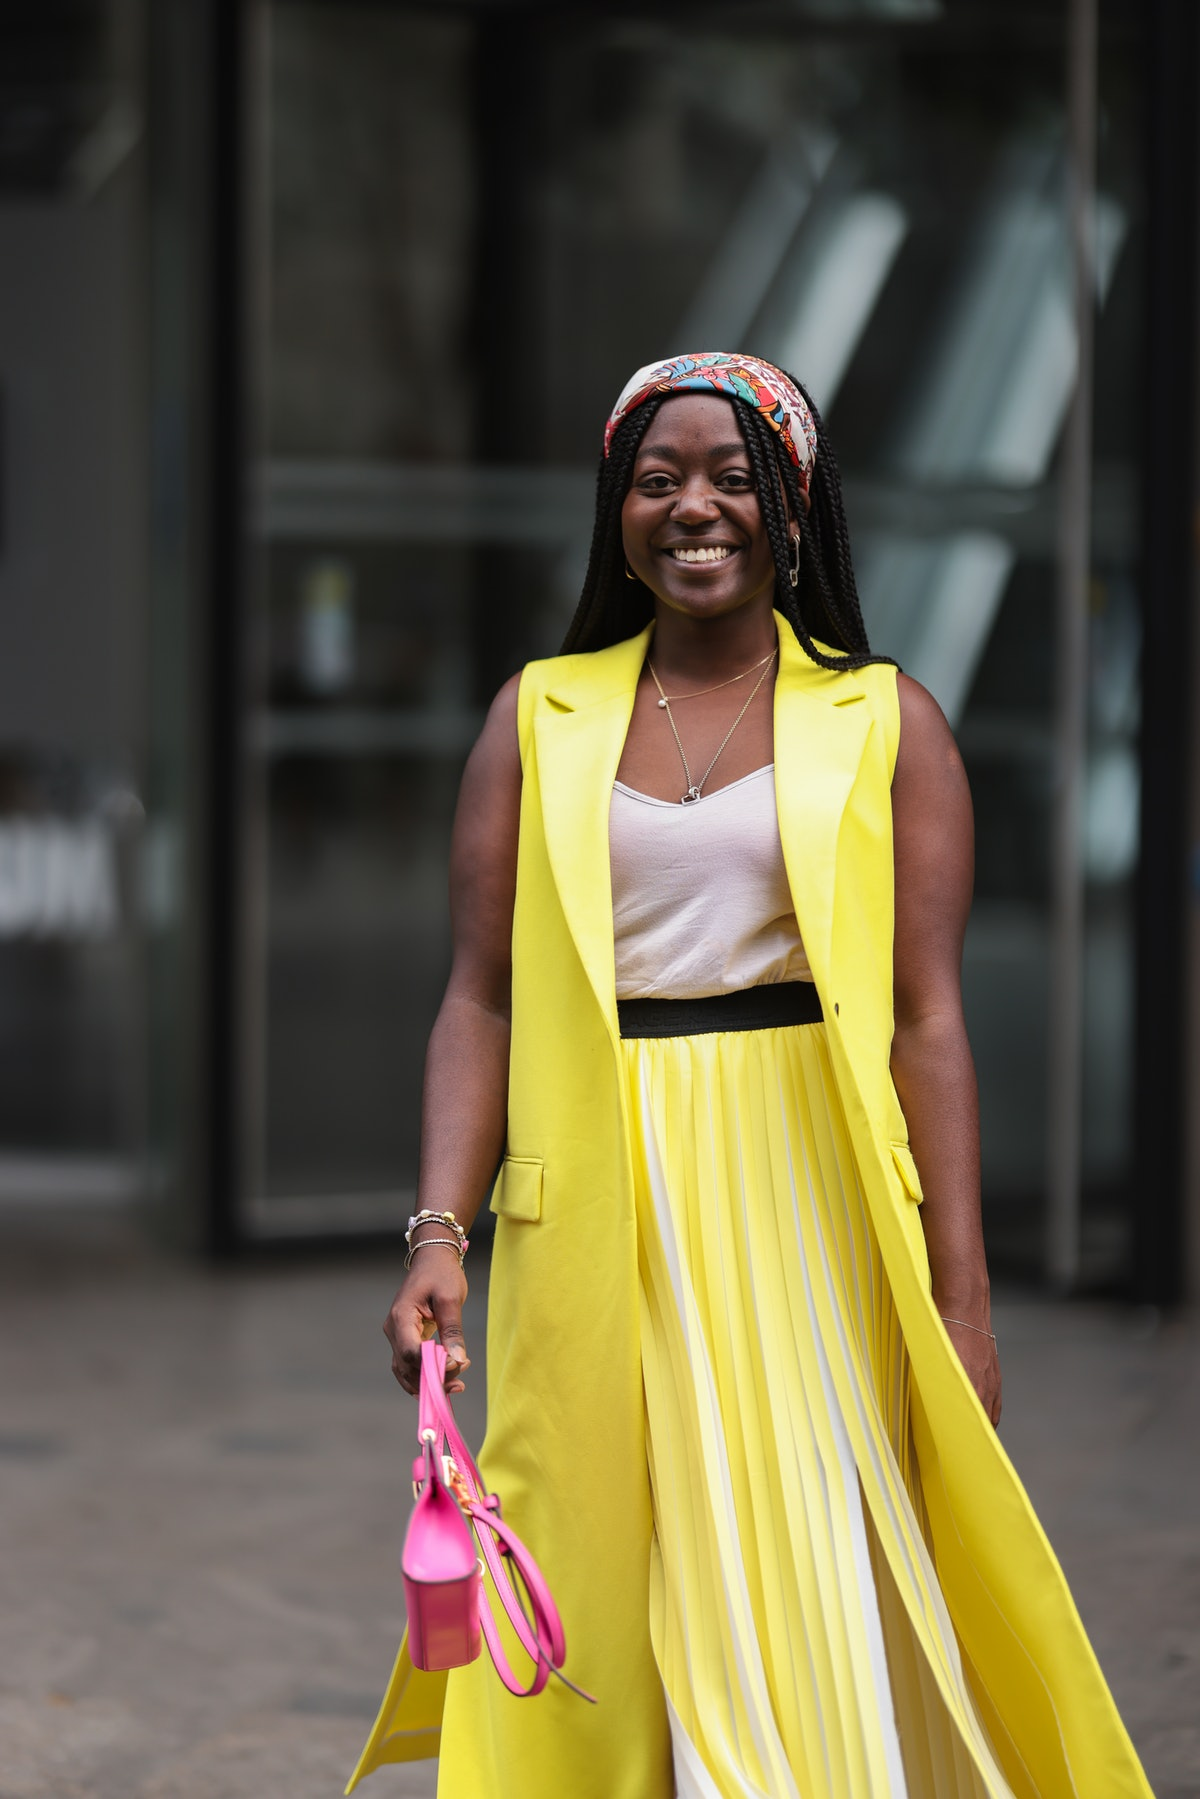 Lois Opoku demonstrates one of the many ways to wear a bandana or patterned scarf.